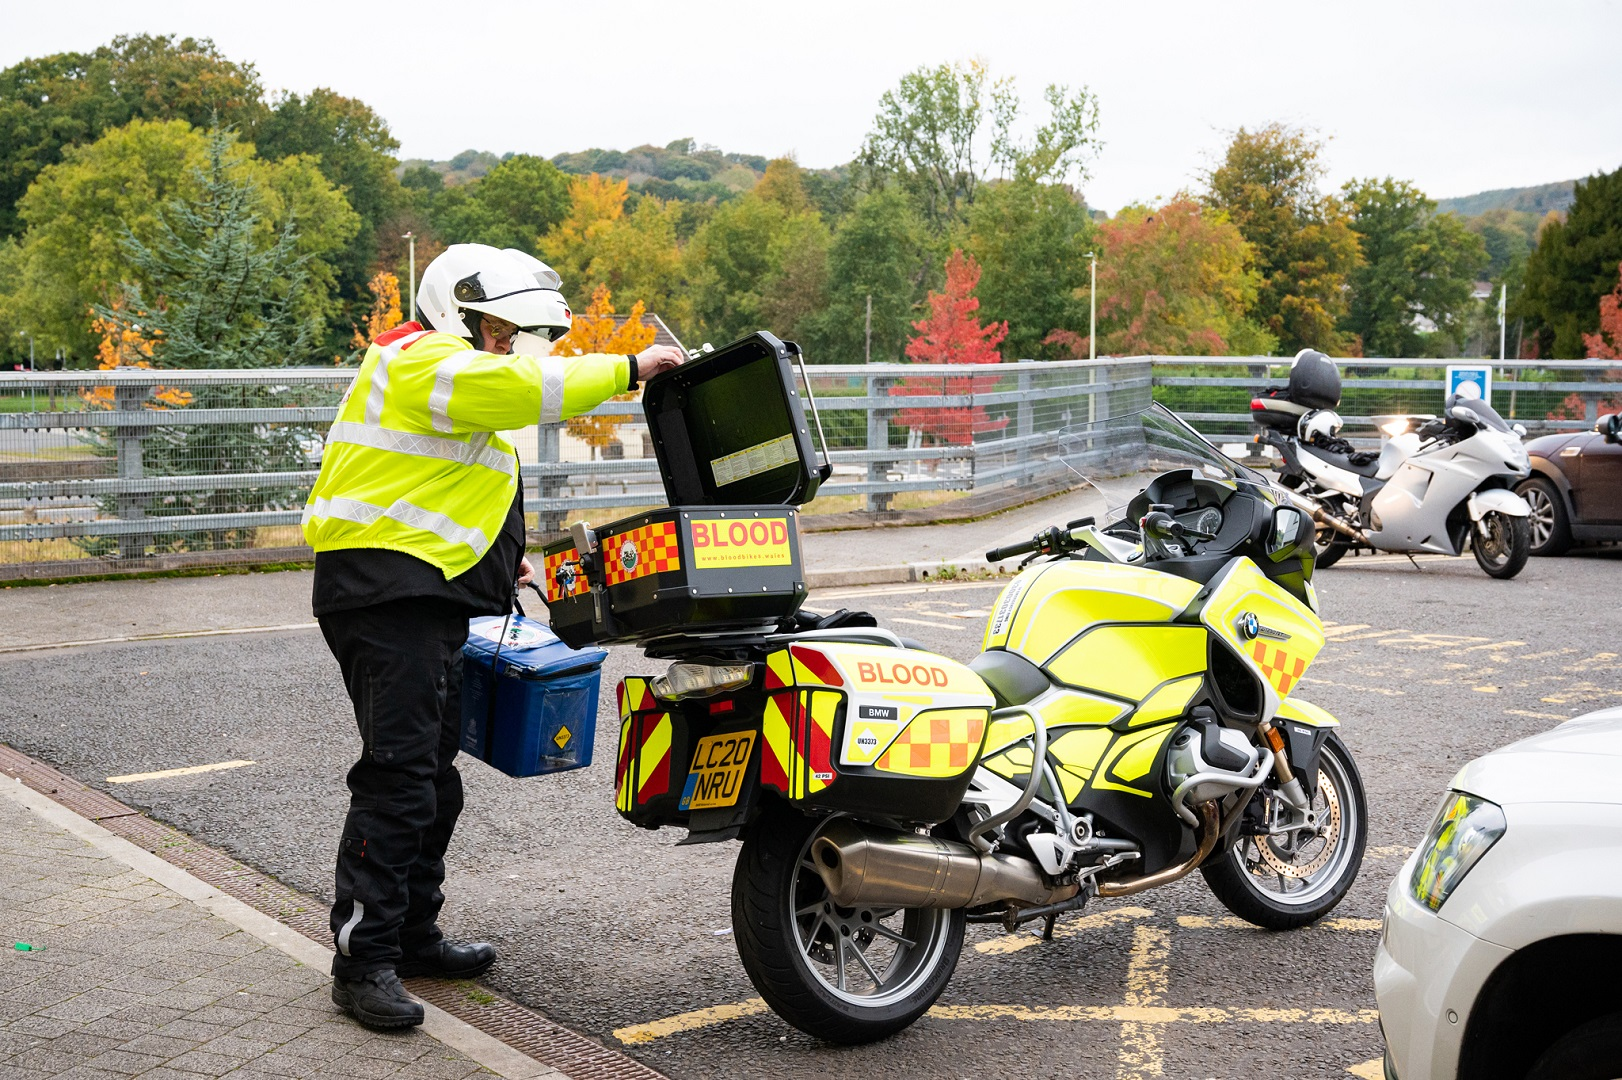 Volunteer in high vis places important NHS materials on the back of his motorbike. The bike is high vis and has the word BLOOD